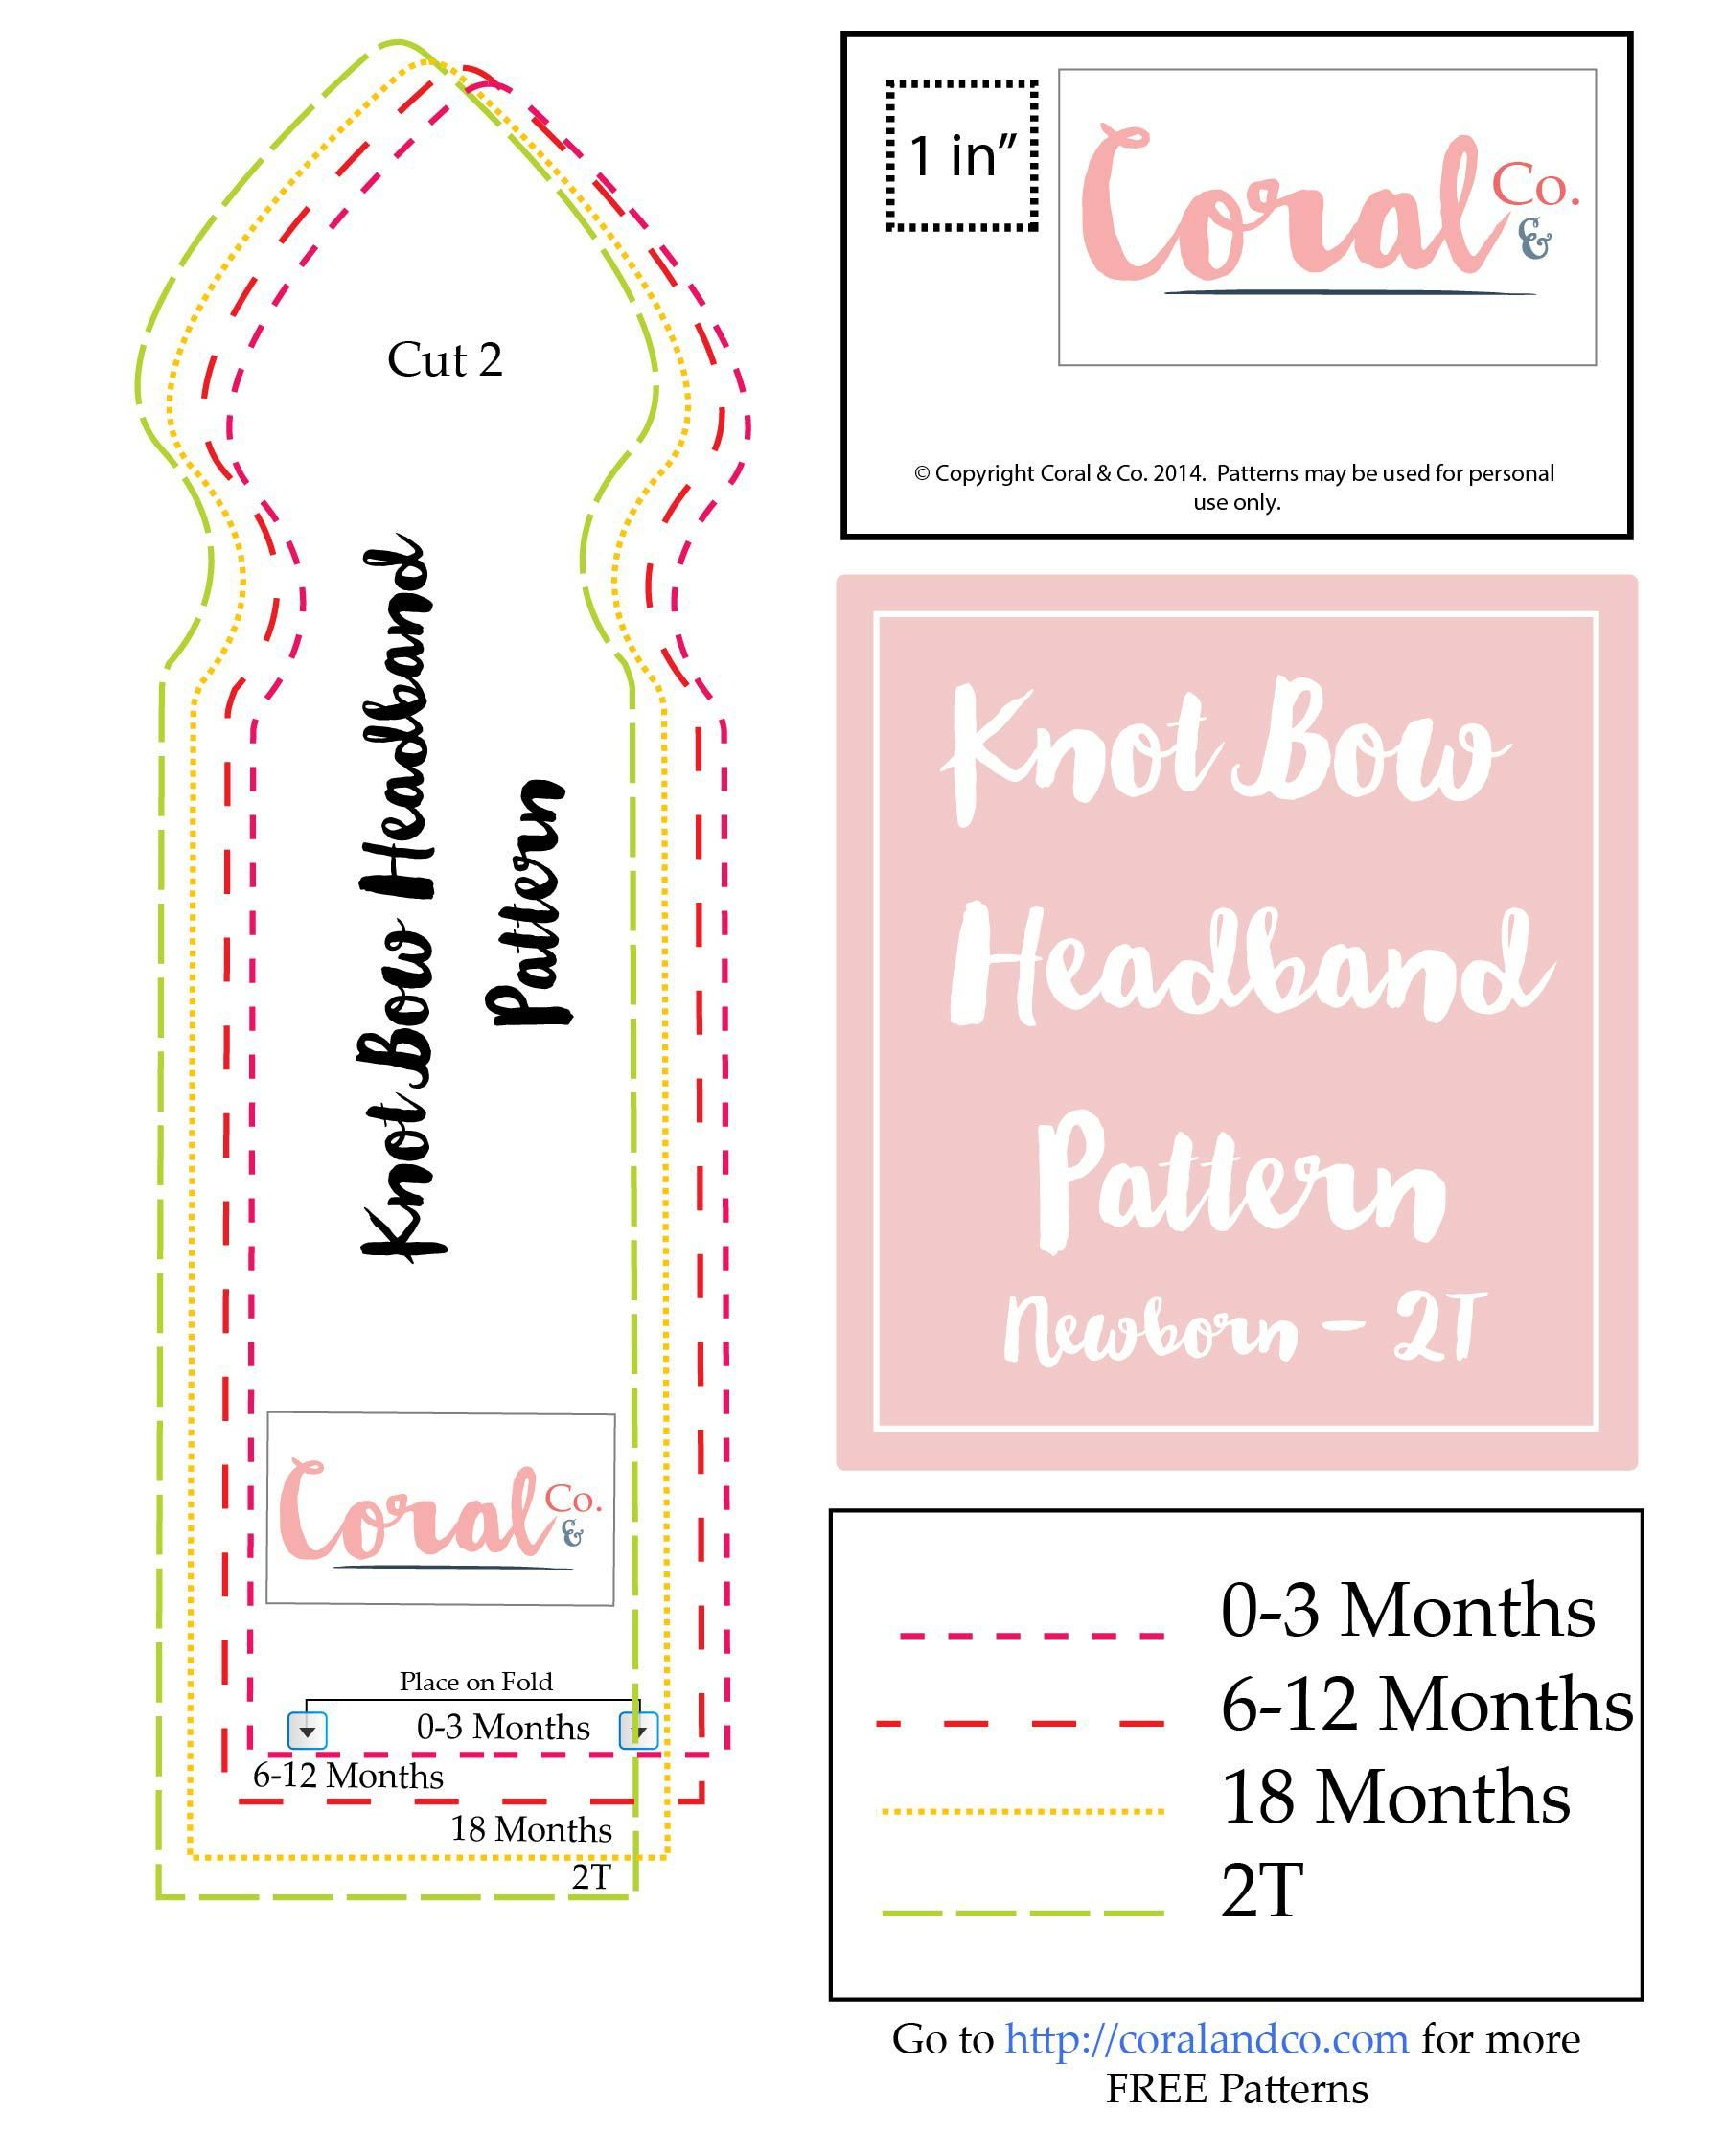 Easy Diy Baby Headband Pattern Free Sewing Knot Bow